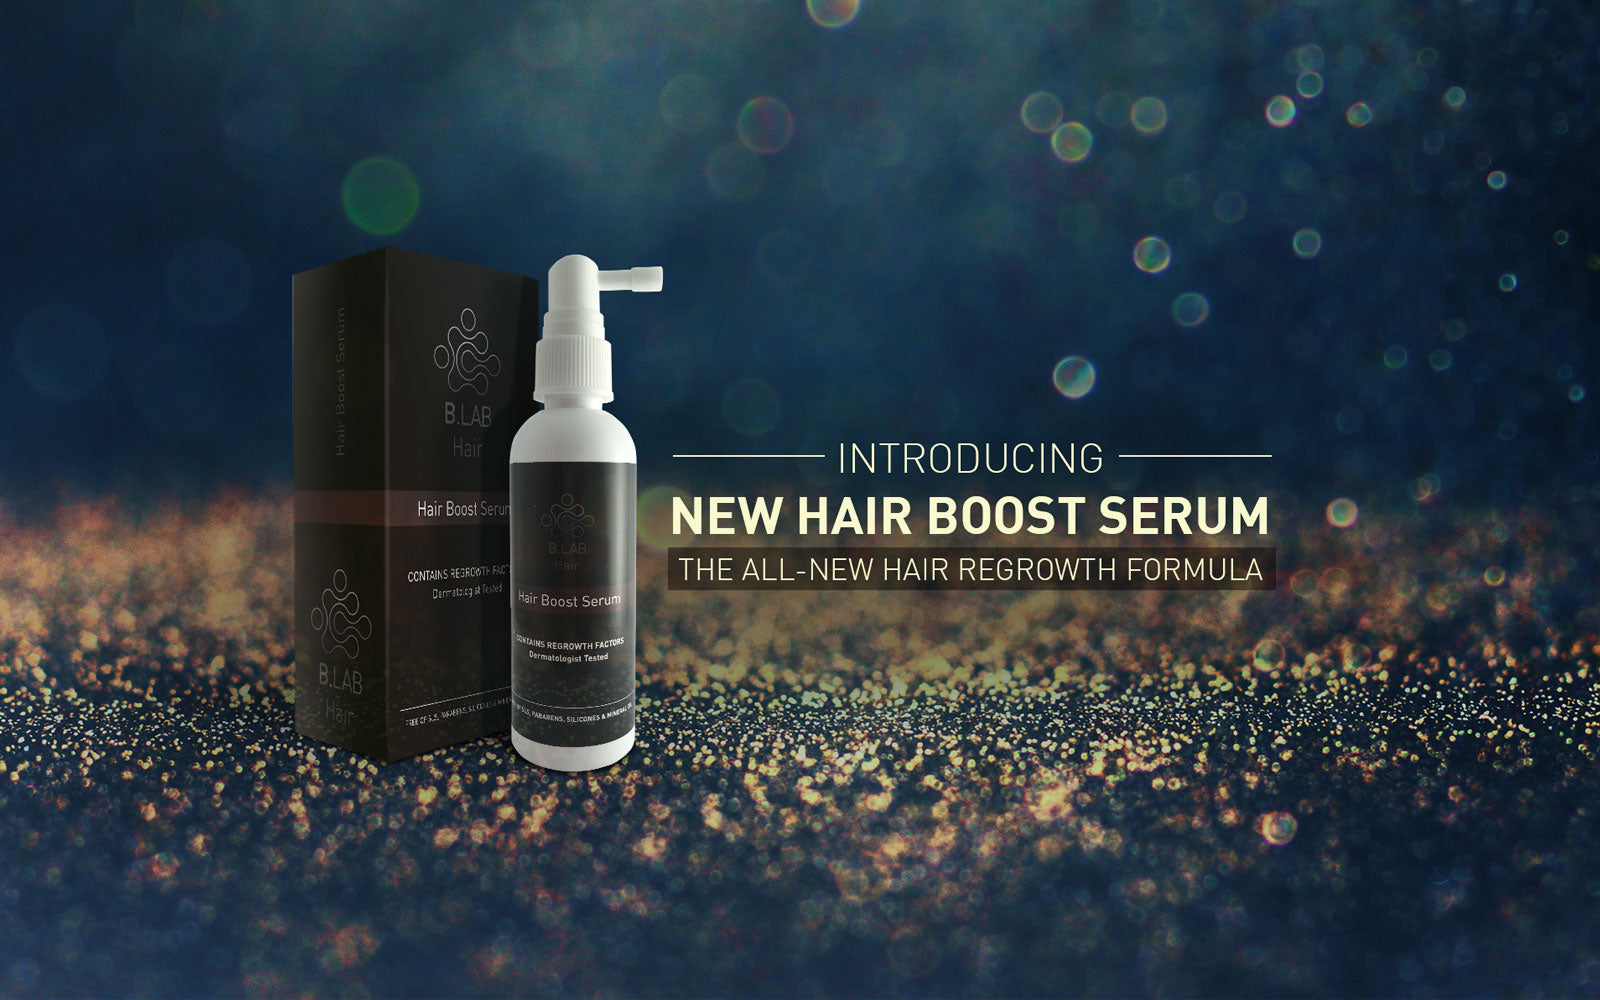 B.LAB Hair Regrowth System